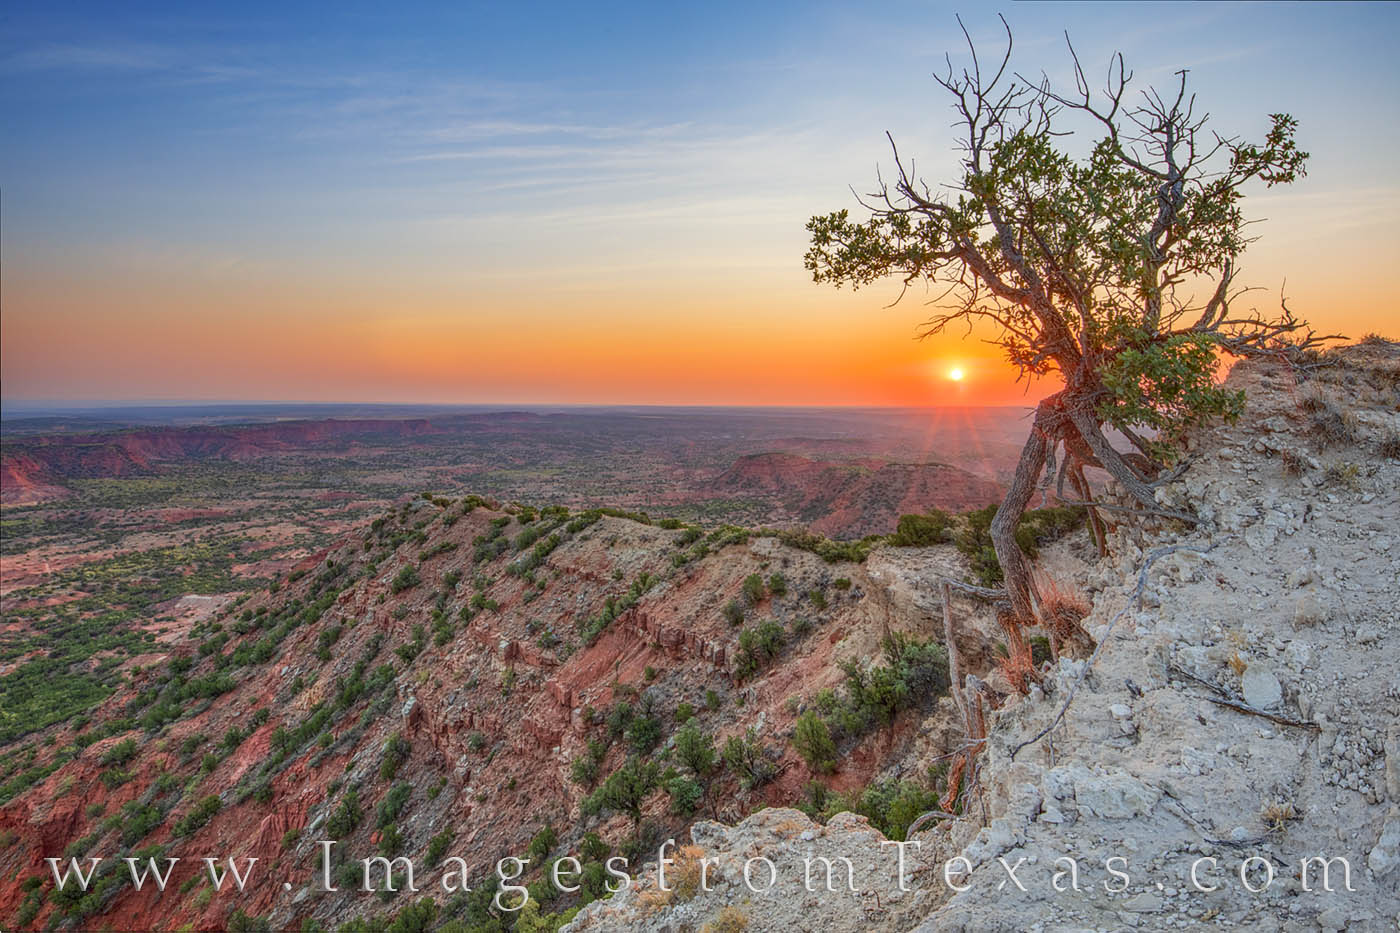 caprock canyons, sunrise haynes ridge, hiking texas, caprock canyons prints, texas landscapes, west texas, texas prints, north prong, morning, photo